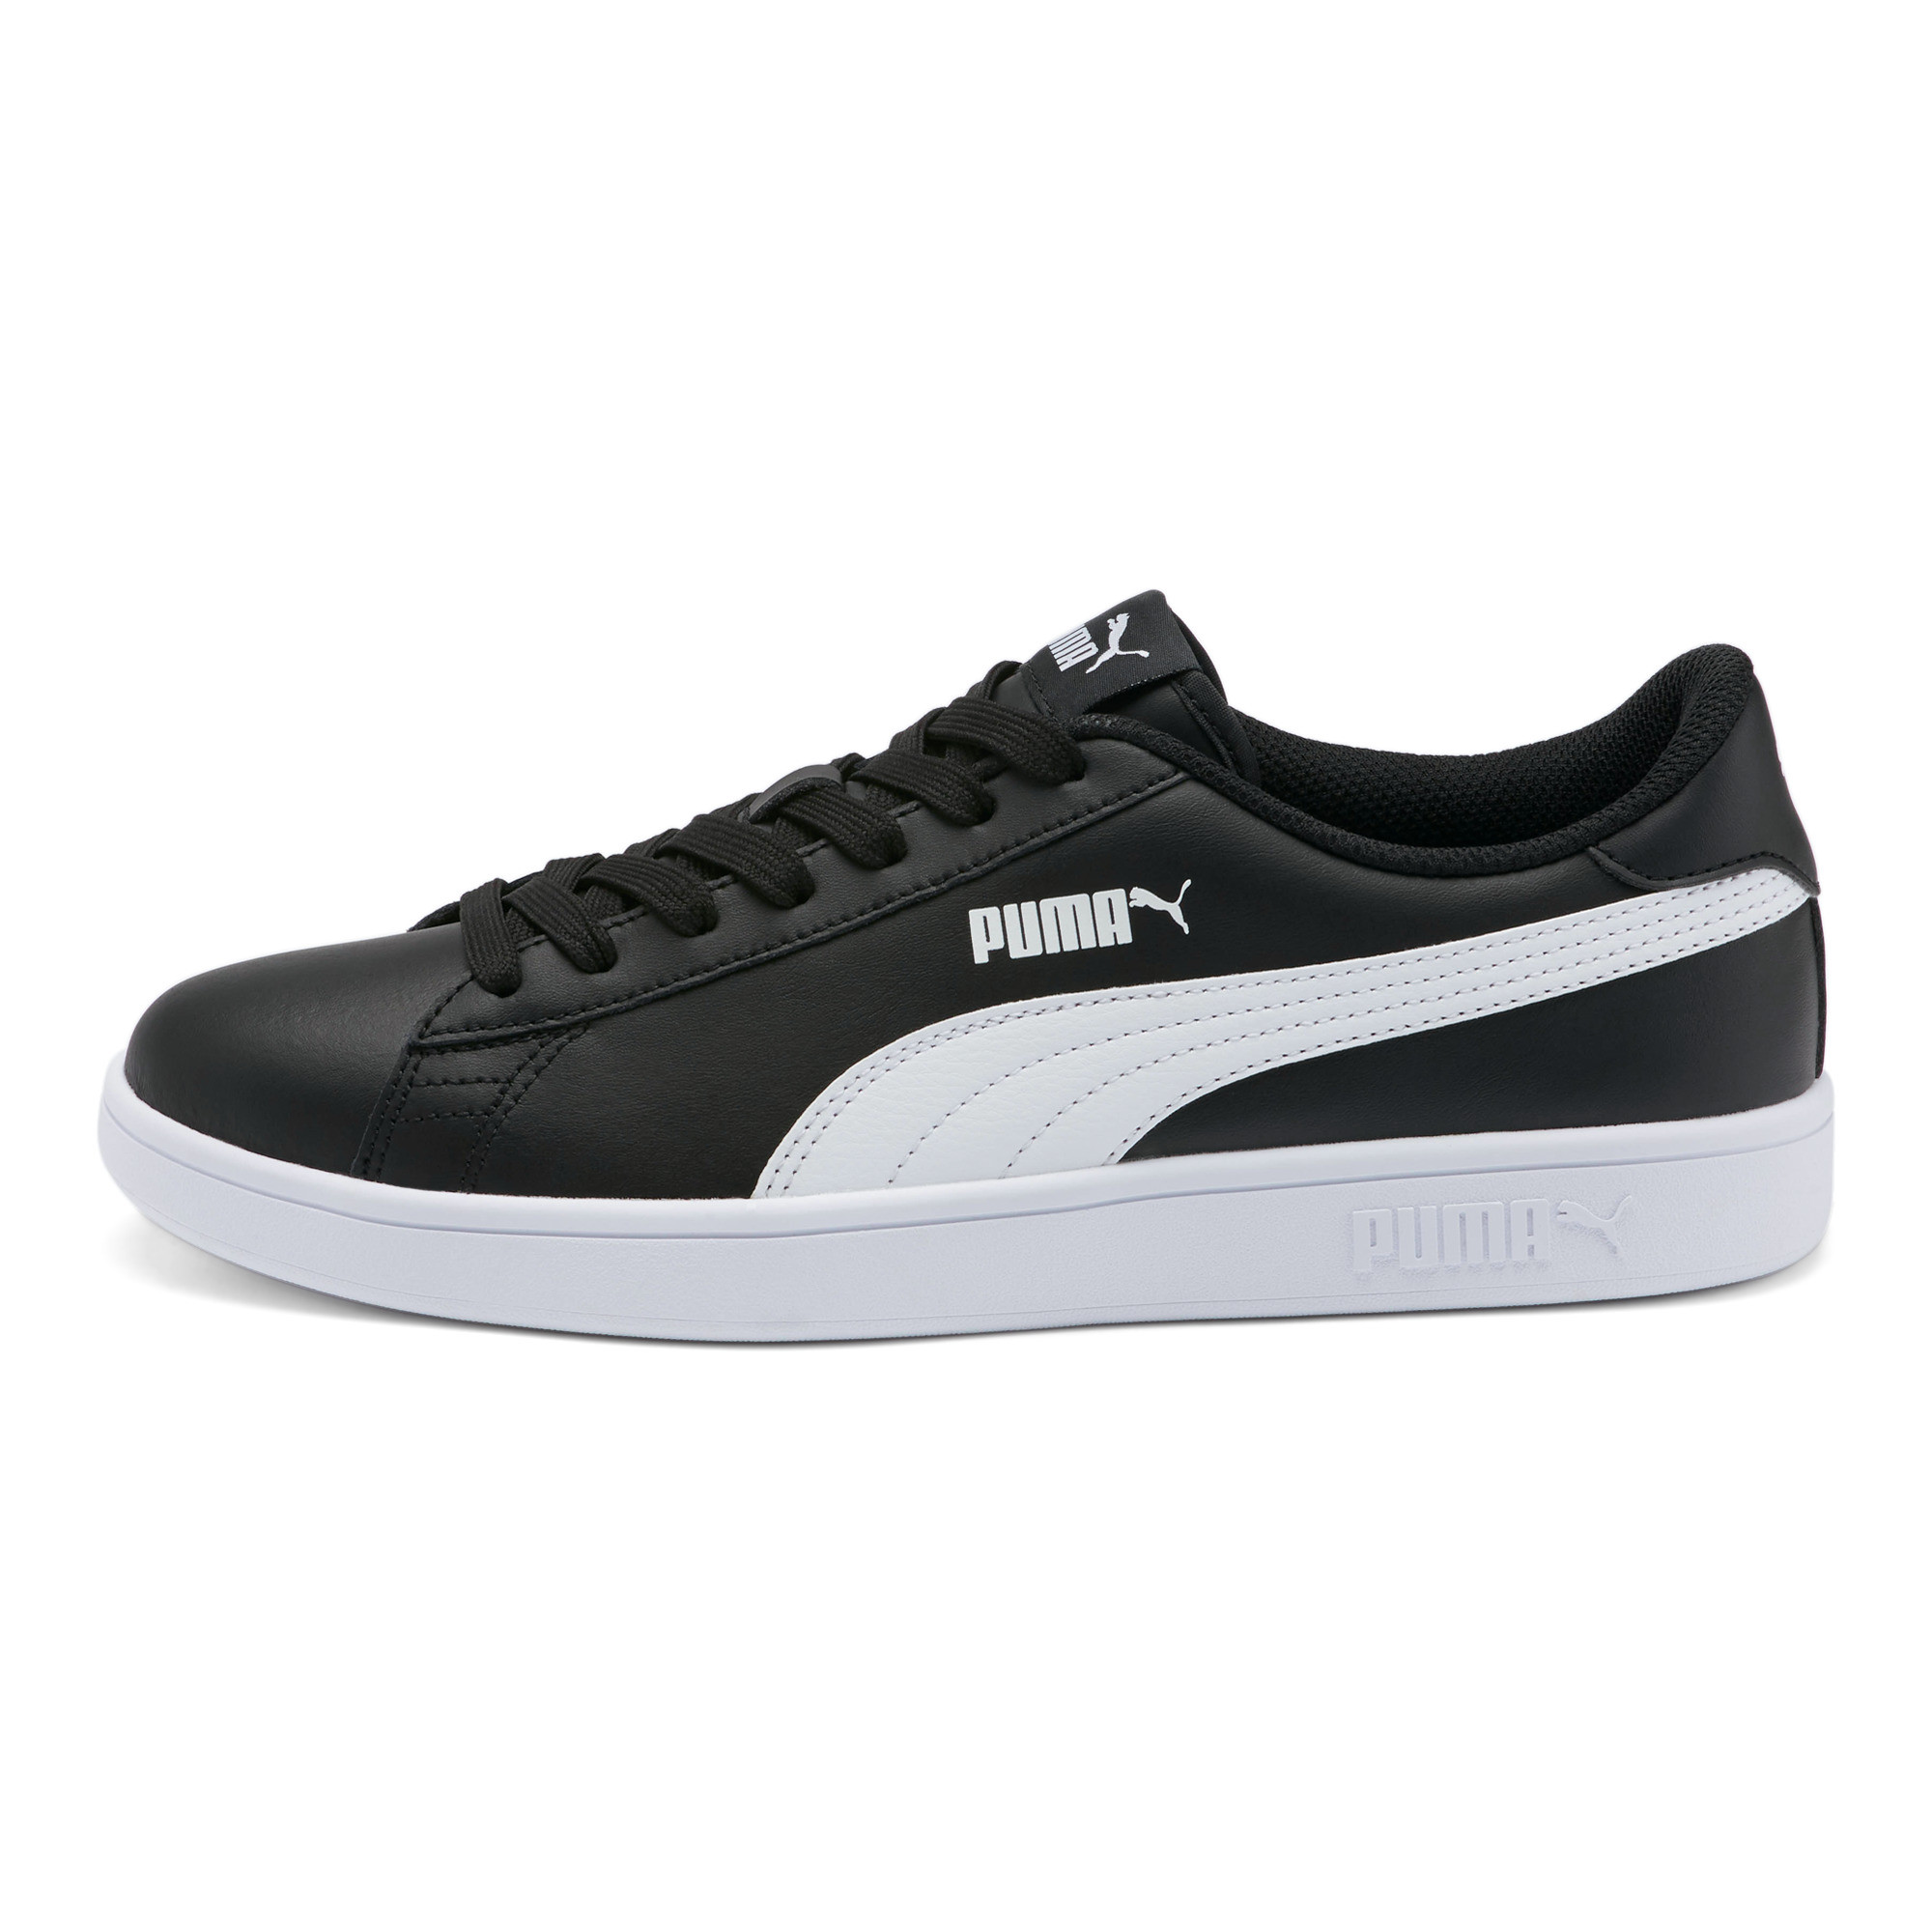 PUMA-PUMA-Smash-v2-Men-039-s-Sneakers-Men-Shoe-Basics thumbnail 10